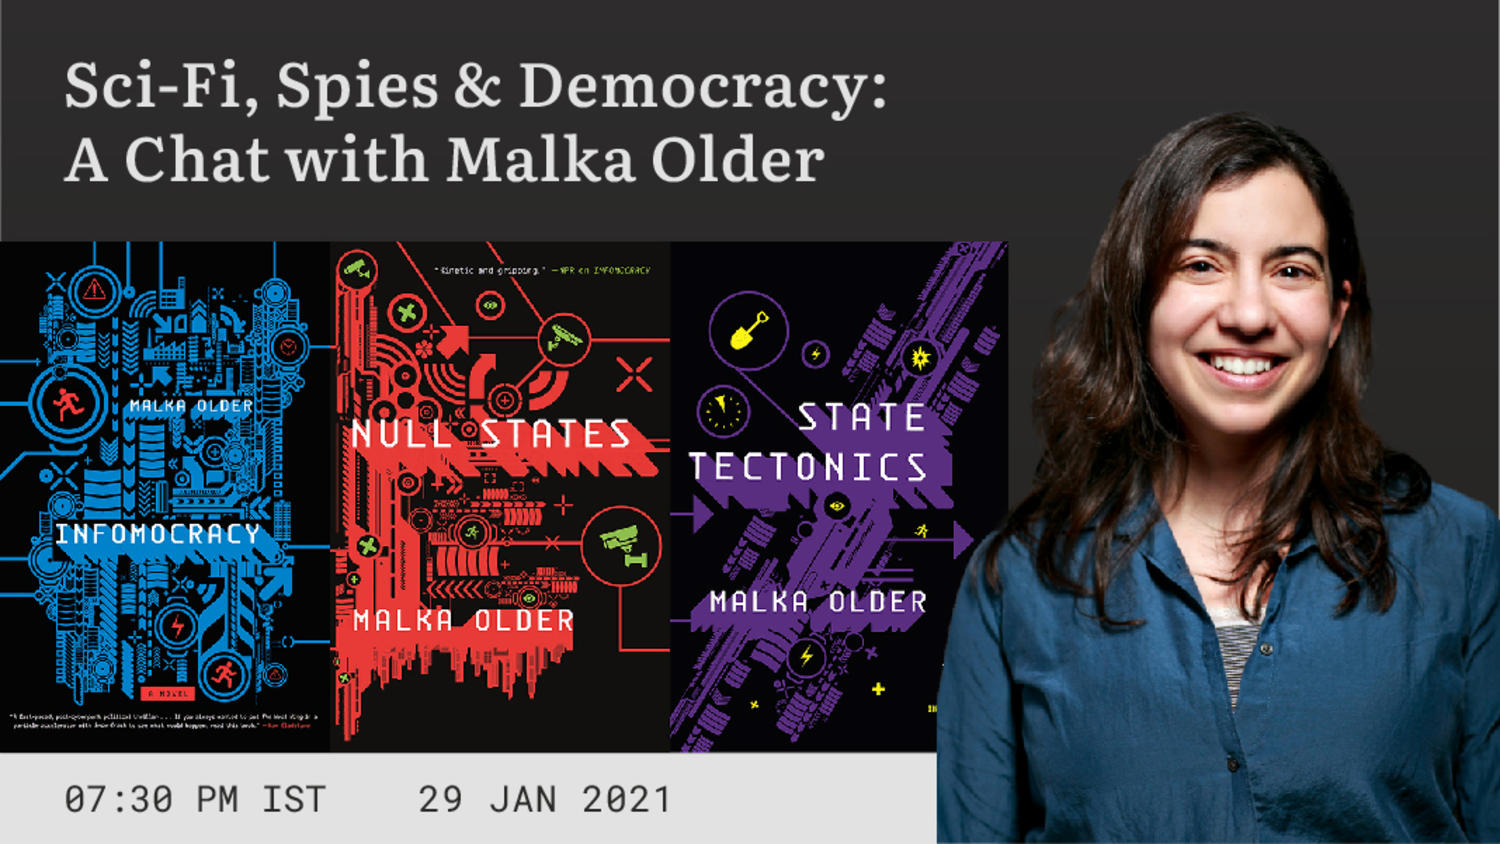 Sci-Fi, Spies & Democracy: A Chat with Malka Older